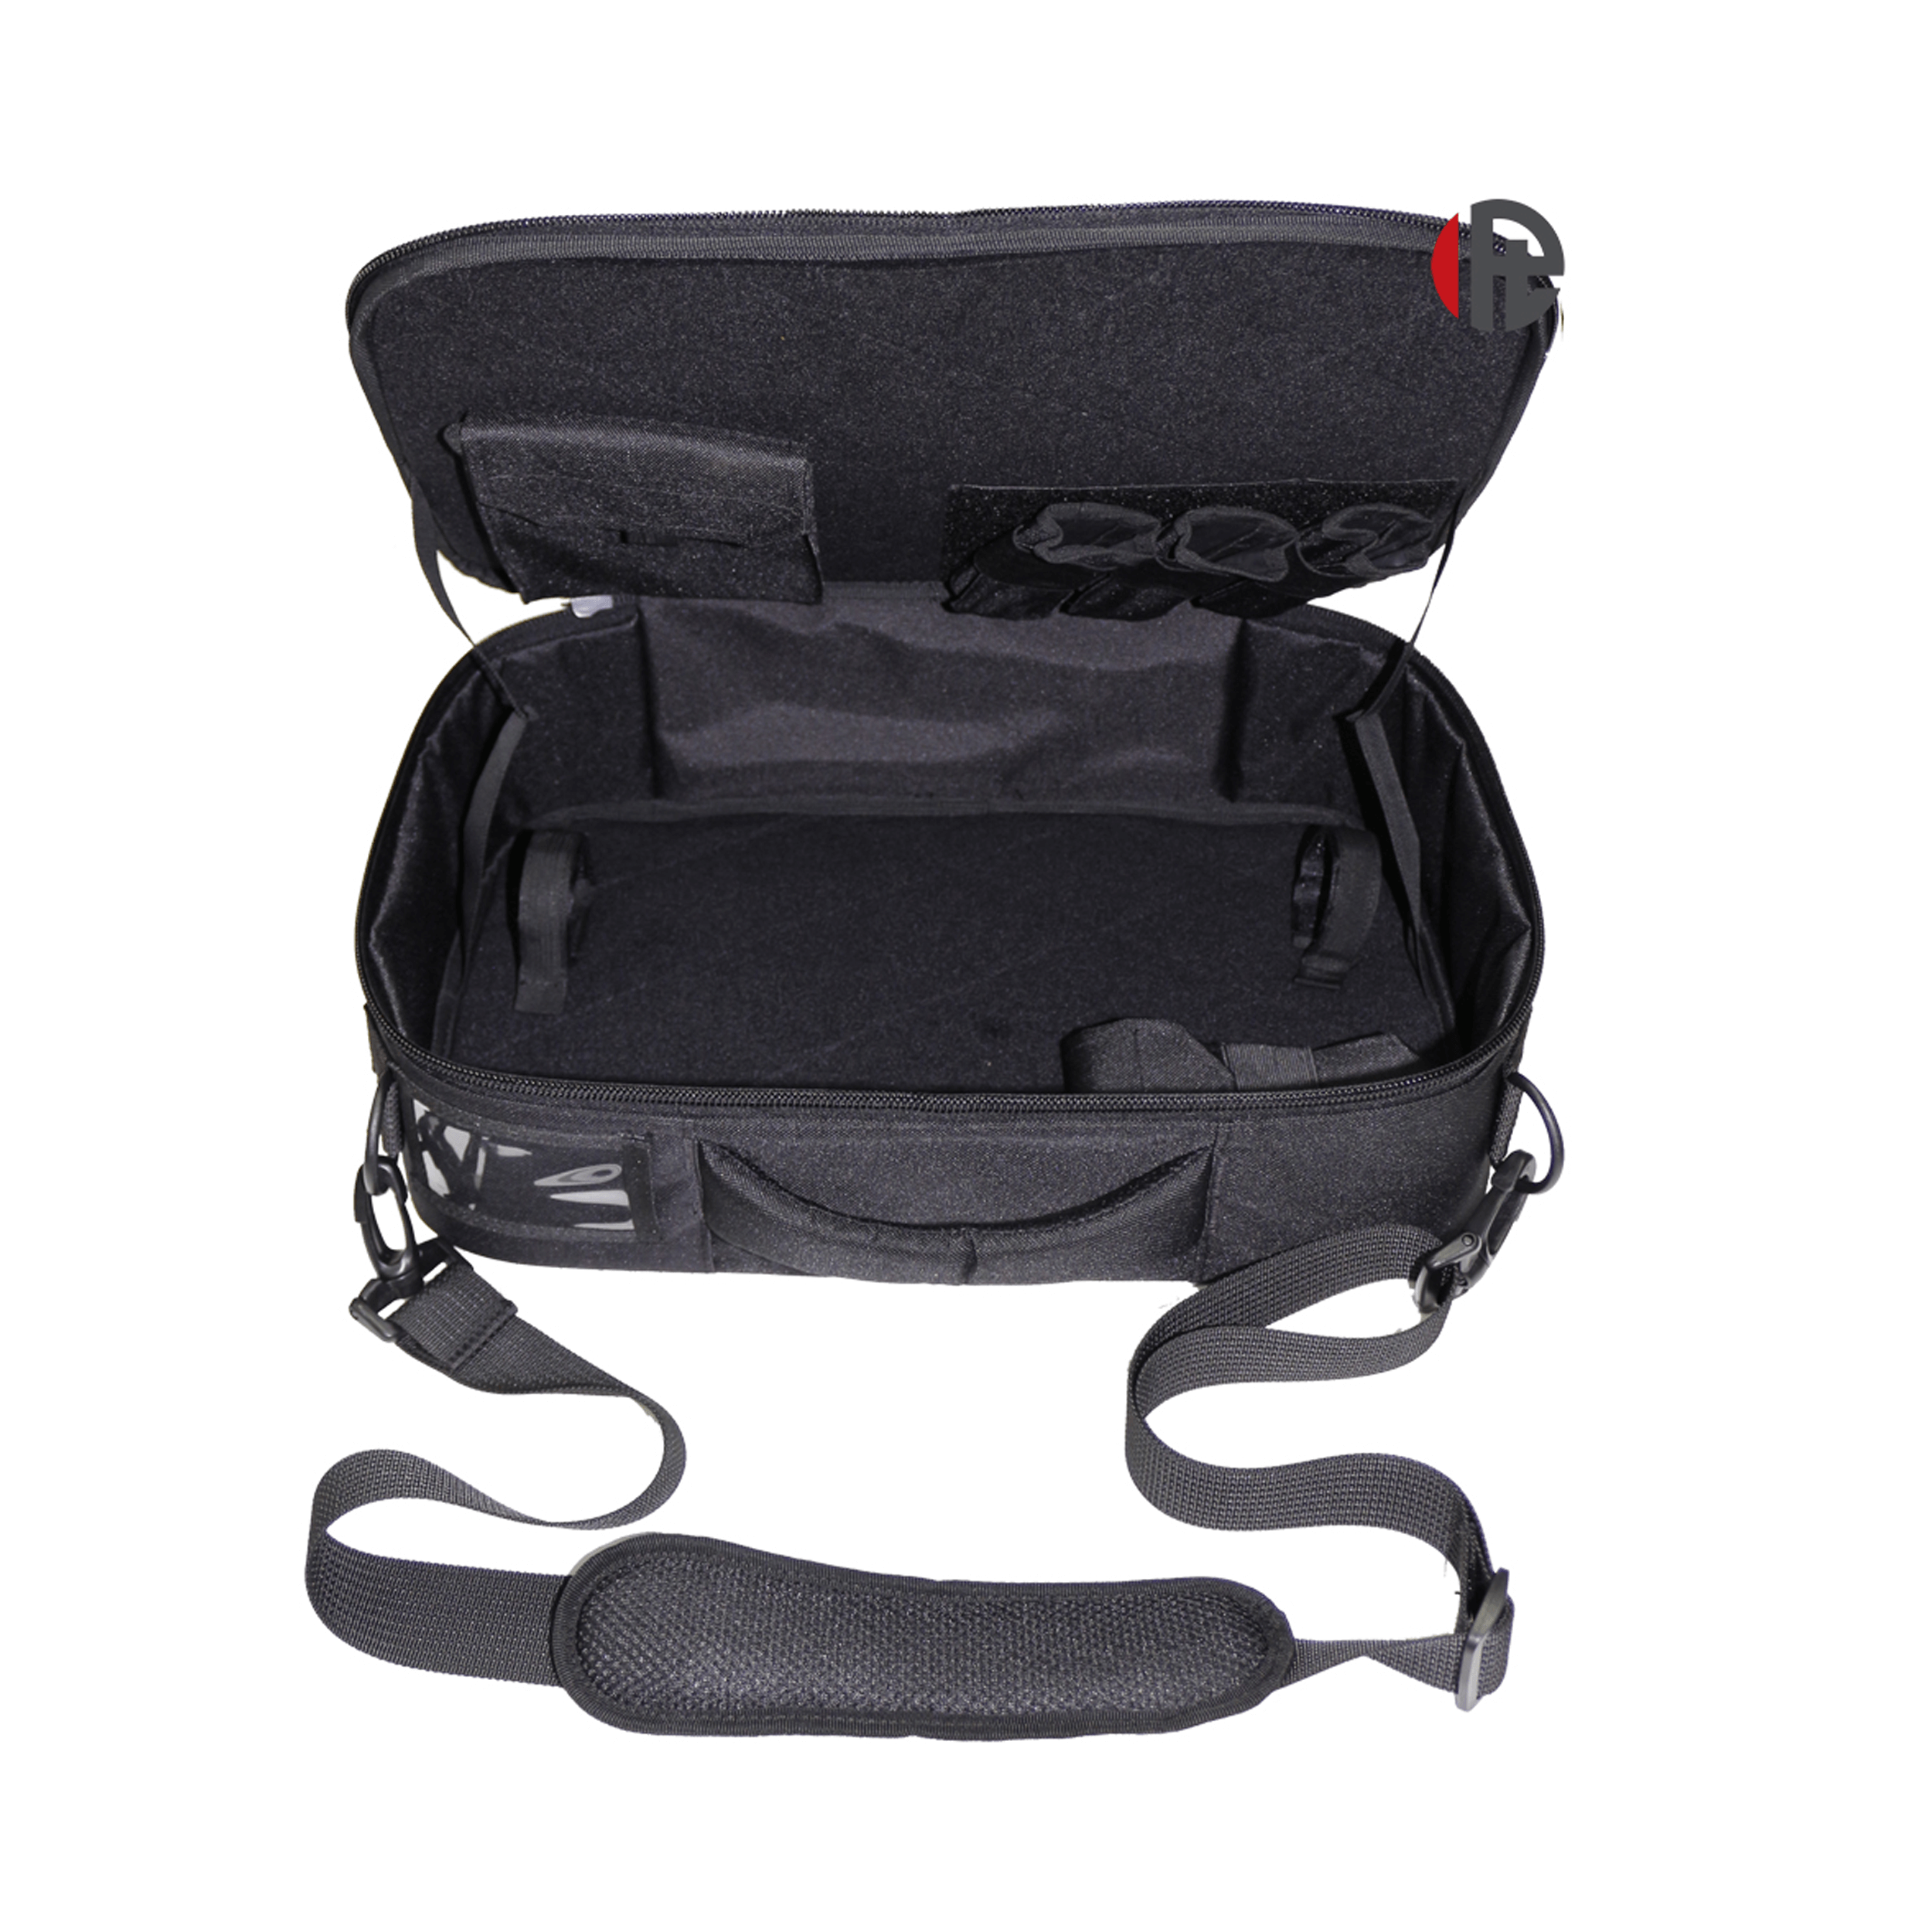 Tactical Carry bag for KPOS G2